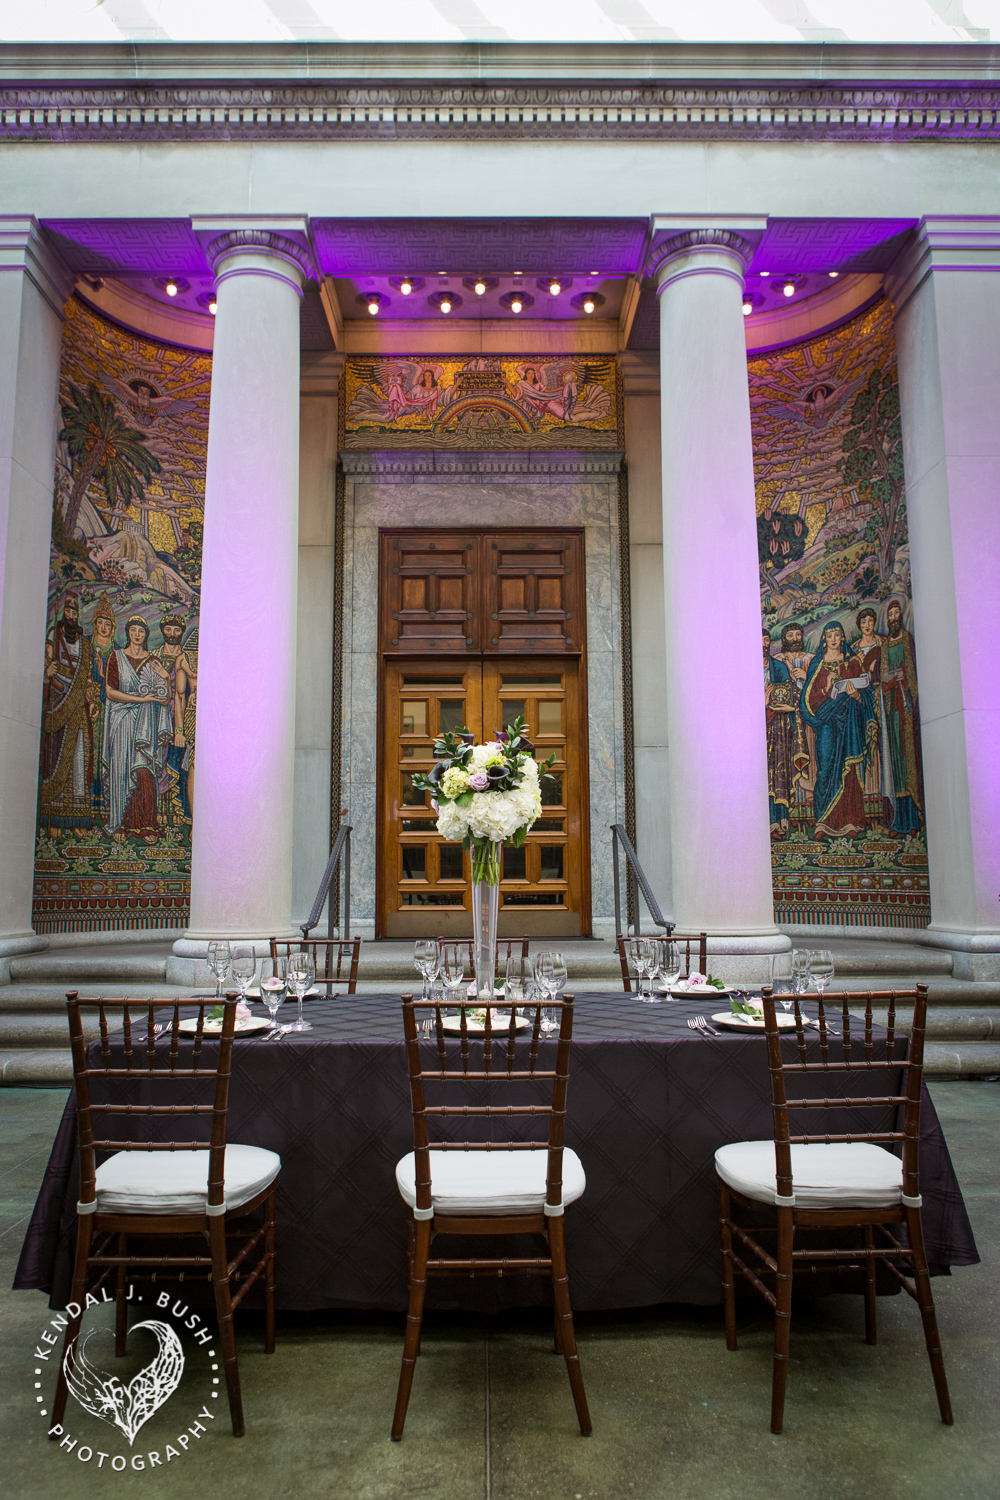 Winter Garden at the Currier Museum of Art.  Featured violet LED uplights, level three Masterpiece. Image by Kendal J. Bush Photography.